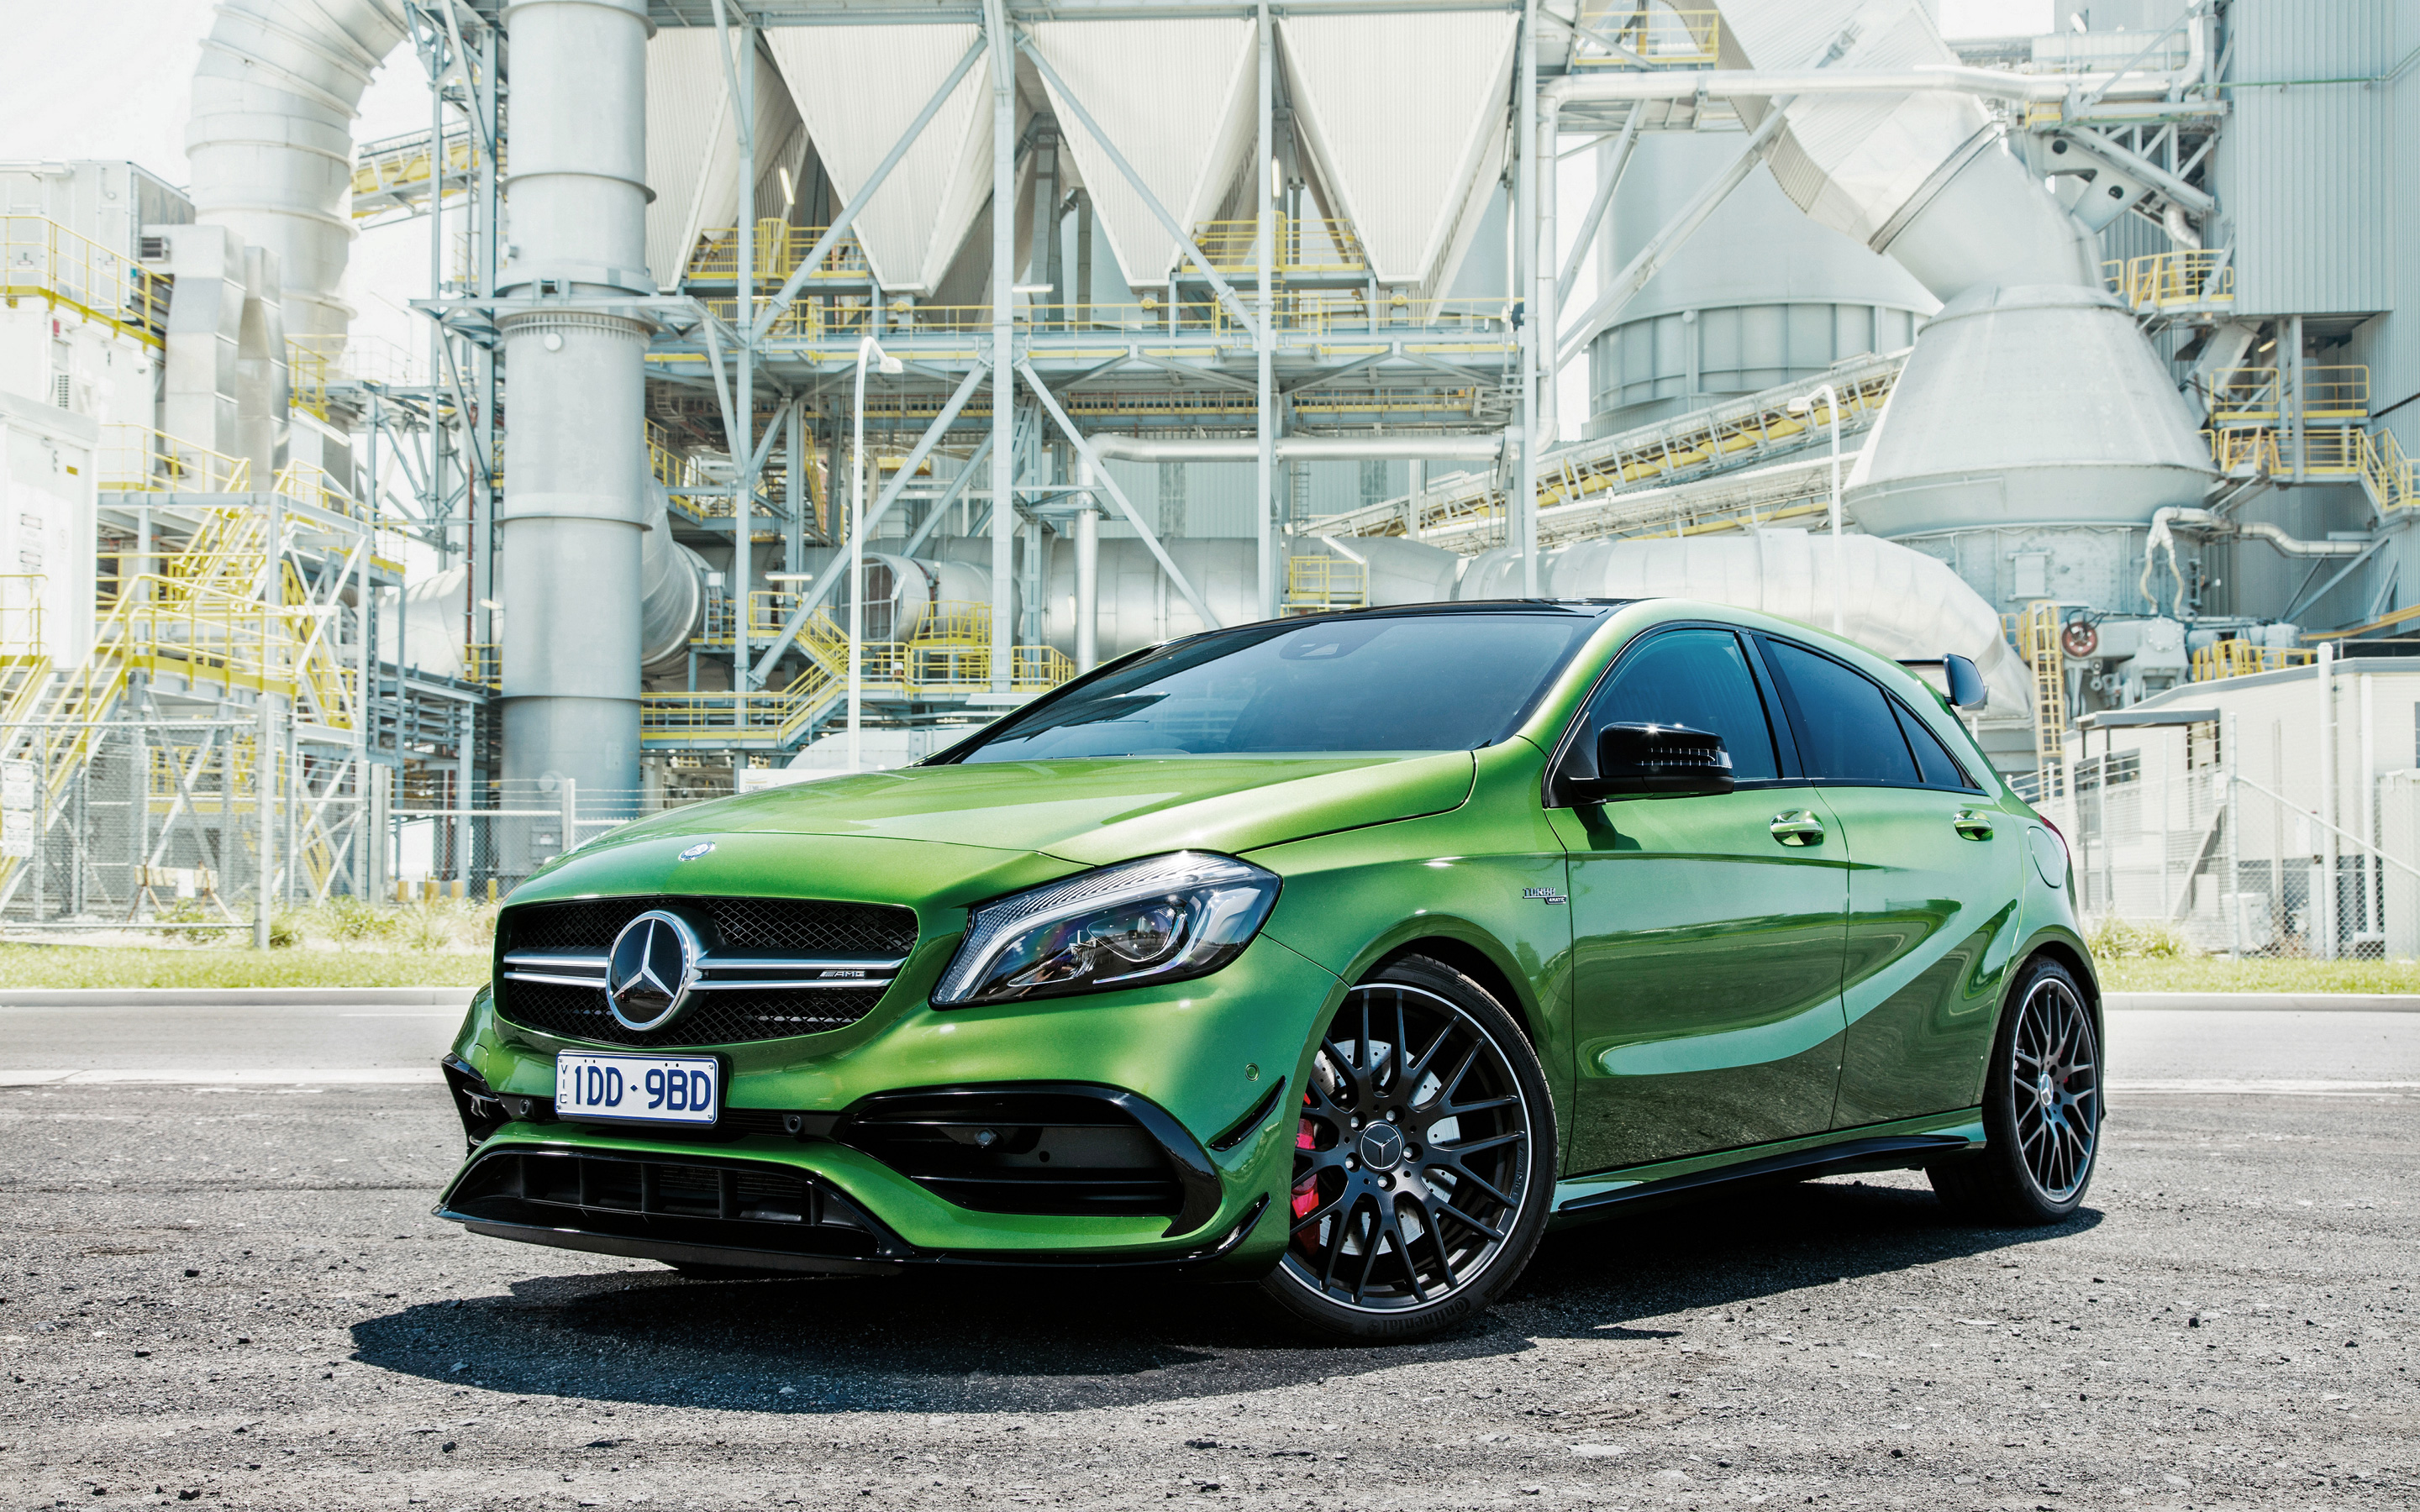 Mercedes benz classe a45 amg 4matic for Mercedes benz a 45 amg 4matic